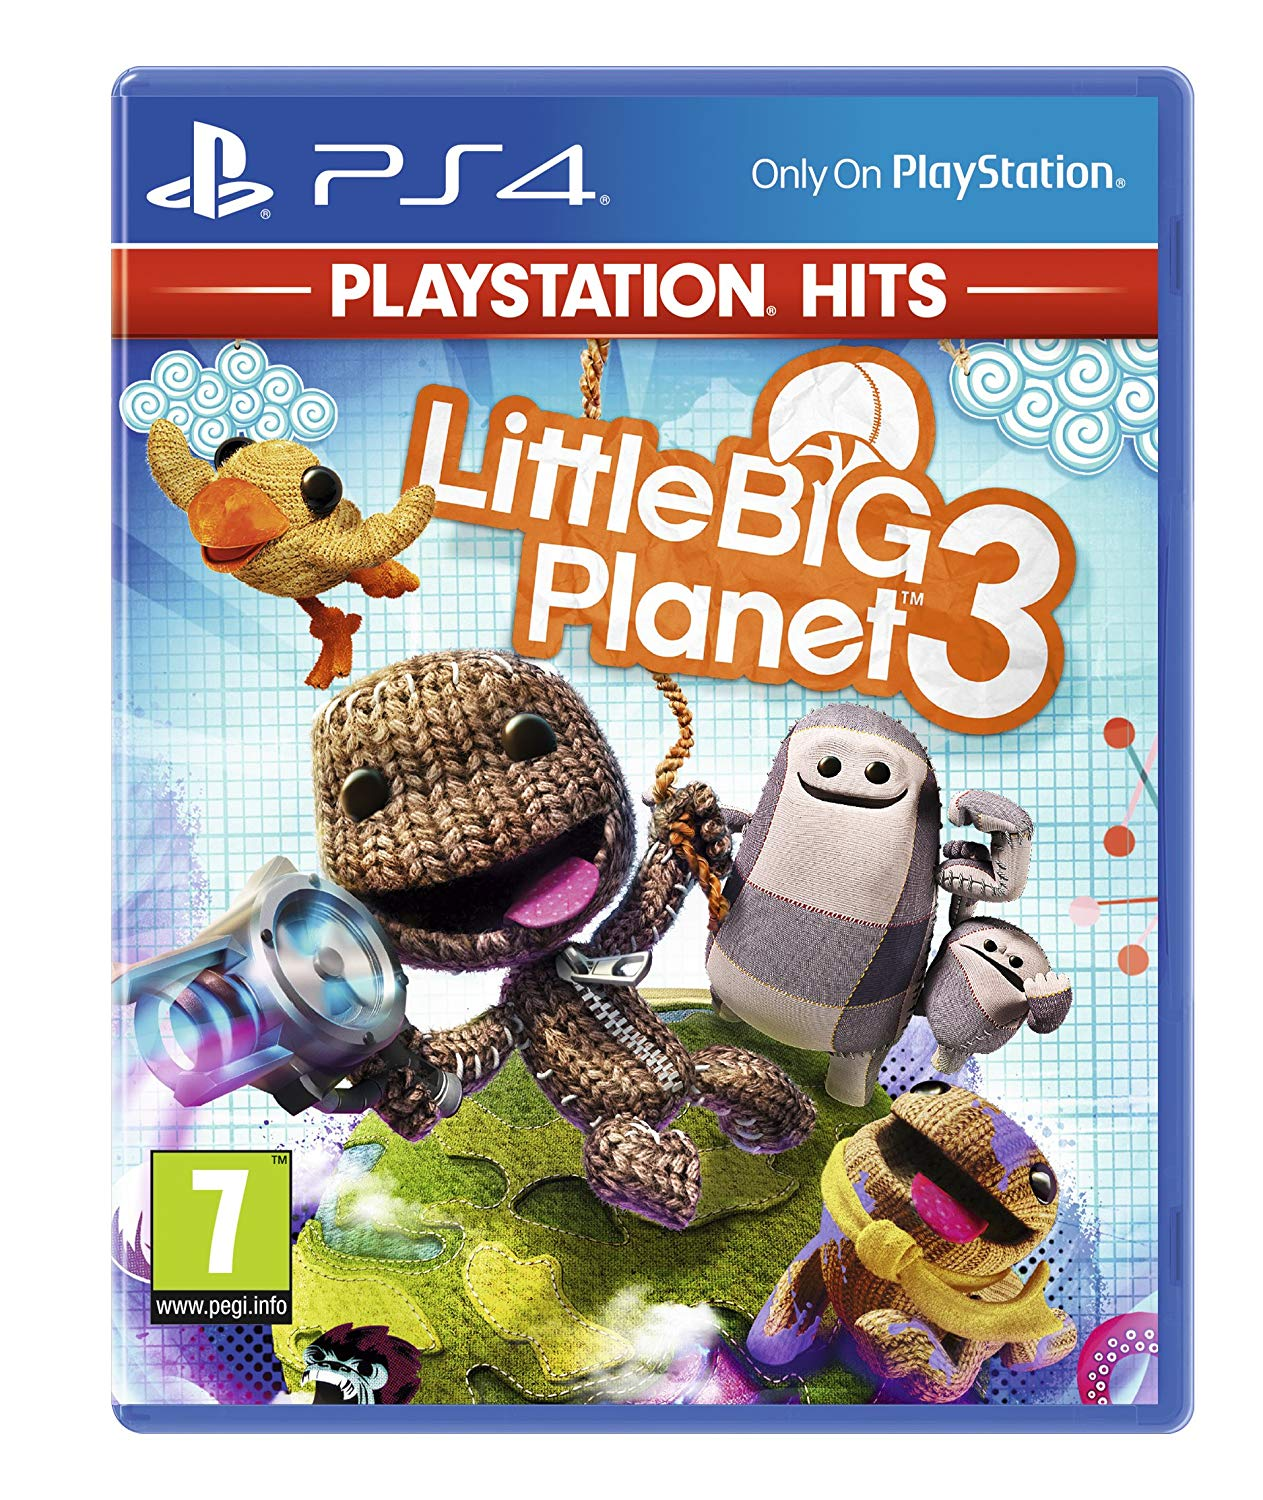 LittleBigPlanet 3 - PlayStation Hits (PS4)